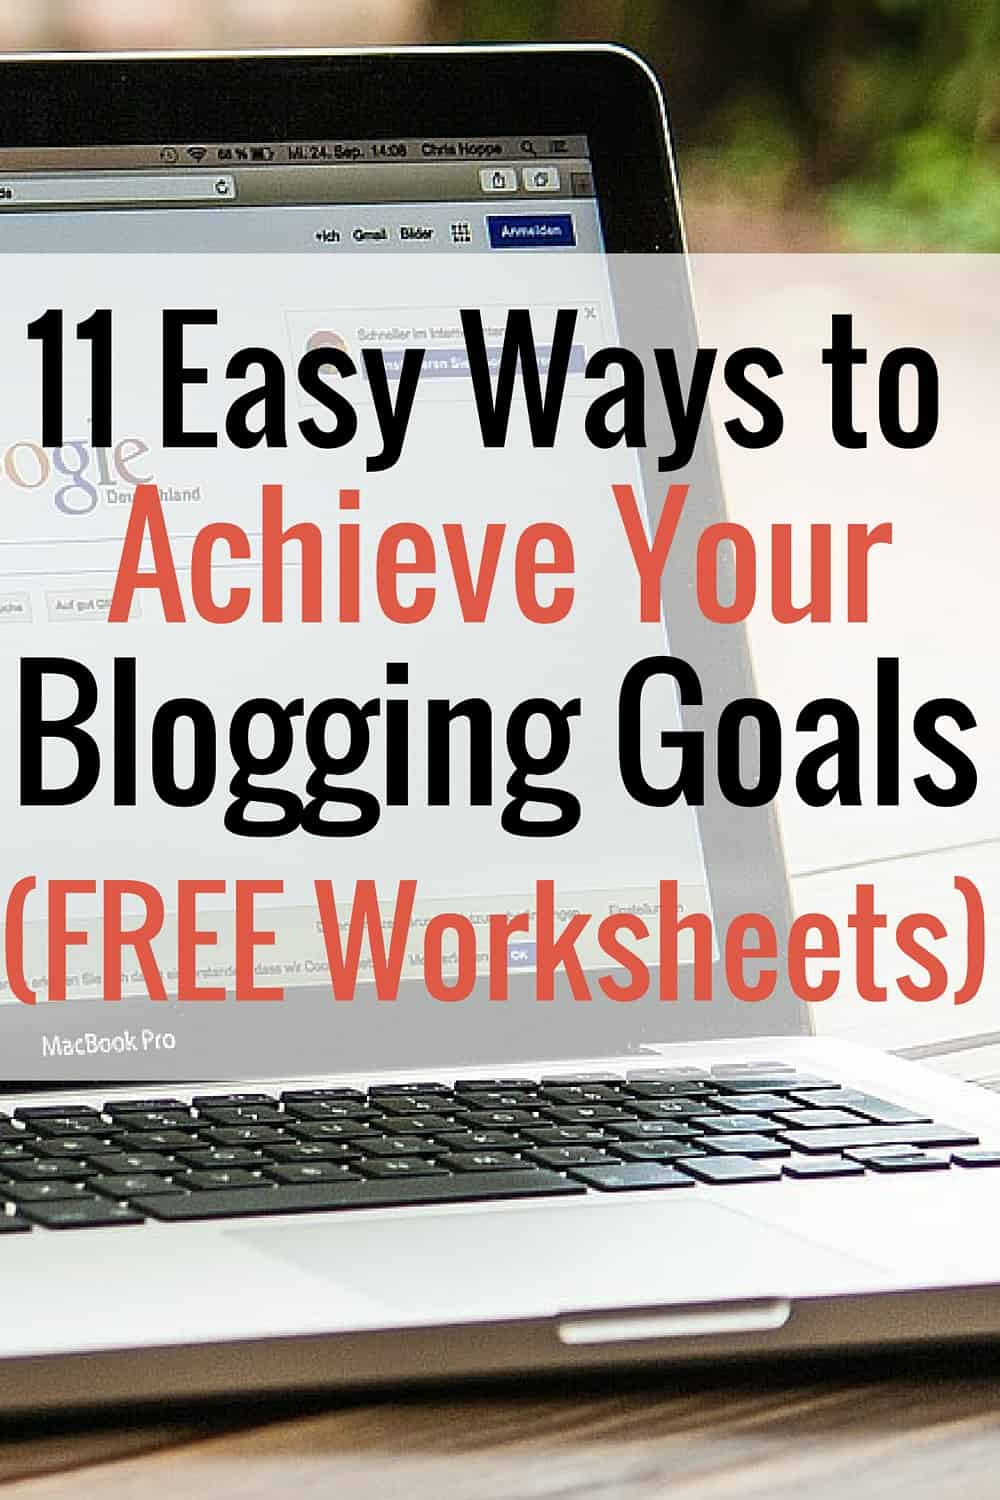 worksheet Jumpstart Worksheets get a jumpstart on your blogging goals with free worksheets now is the time to work blog and achieve bloggiing i